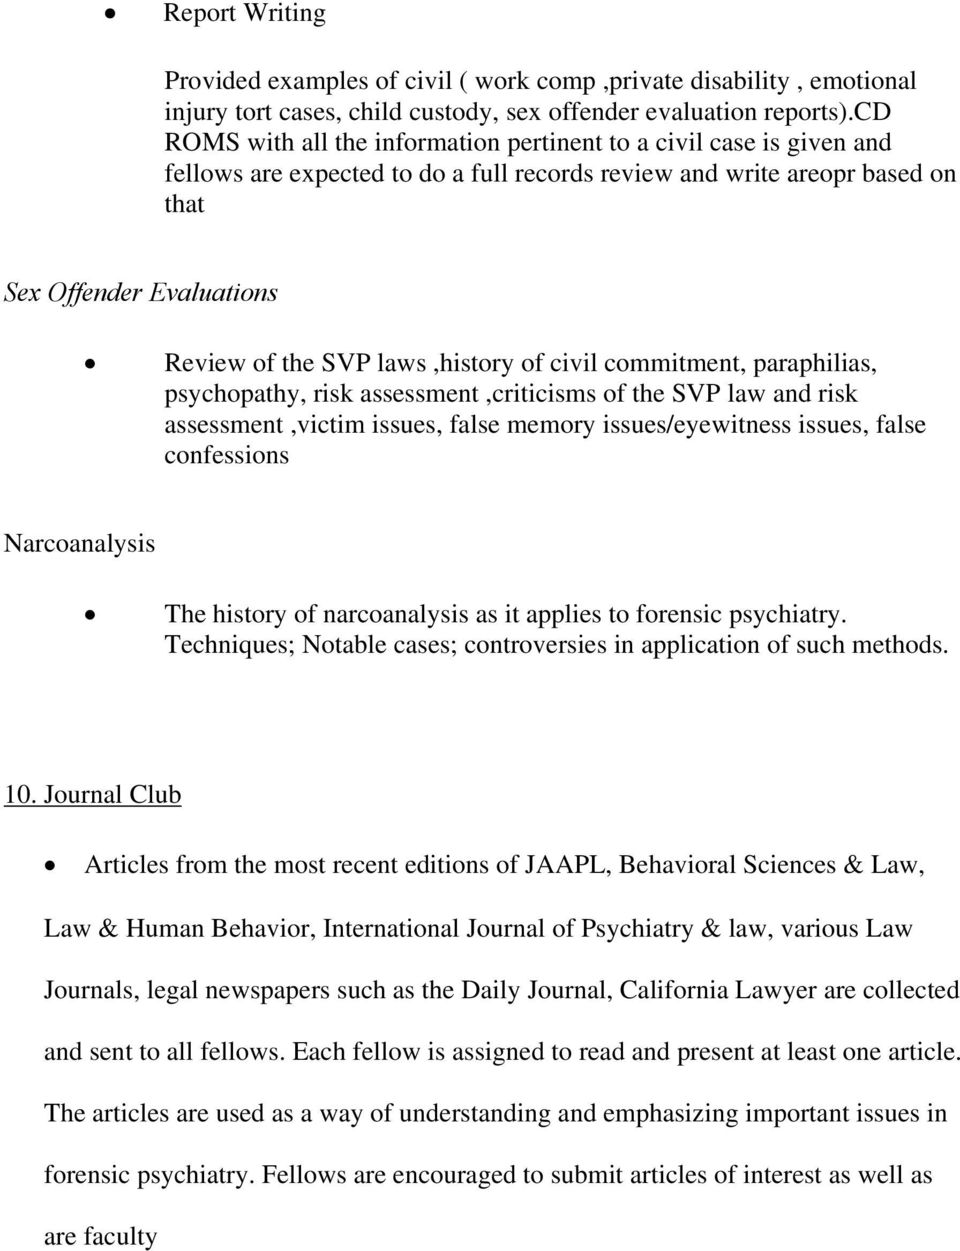 Special Topics  Goals and Objectives - PDF